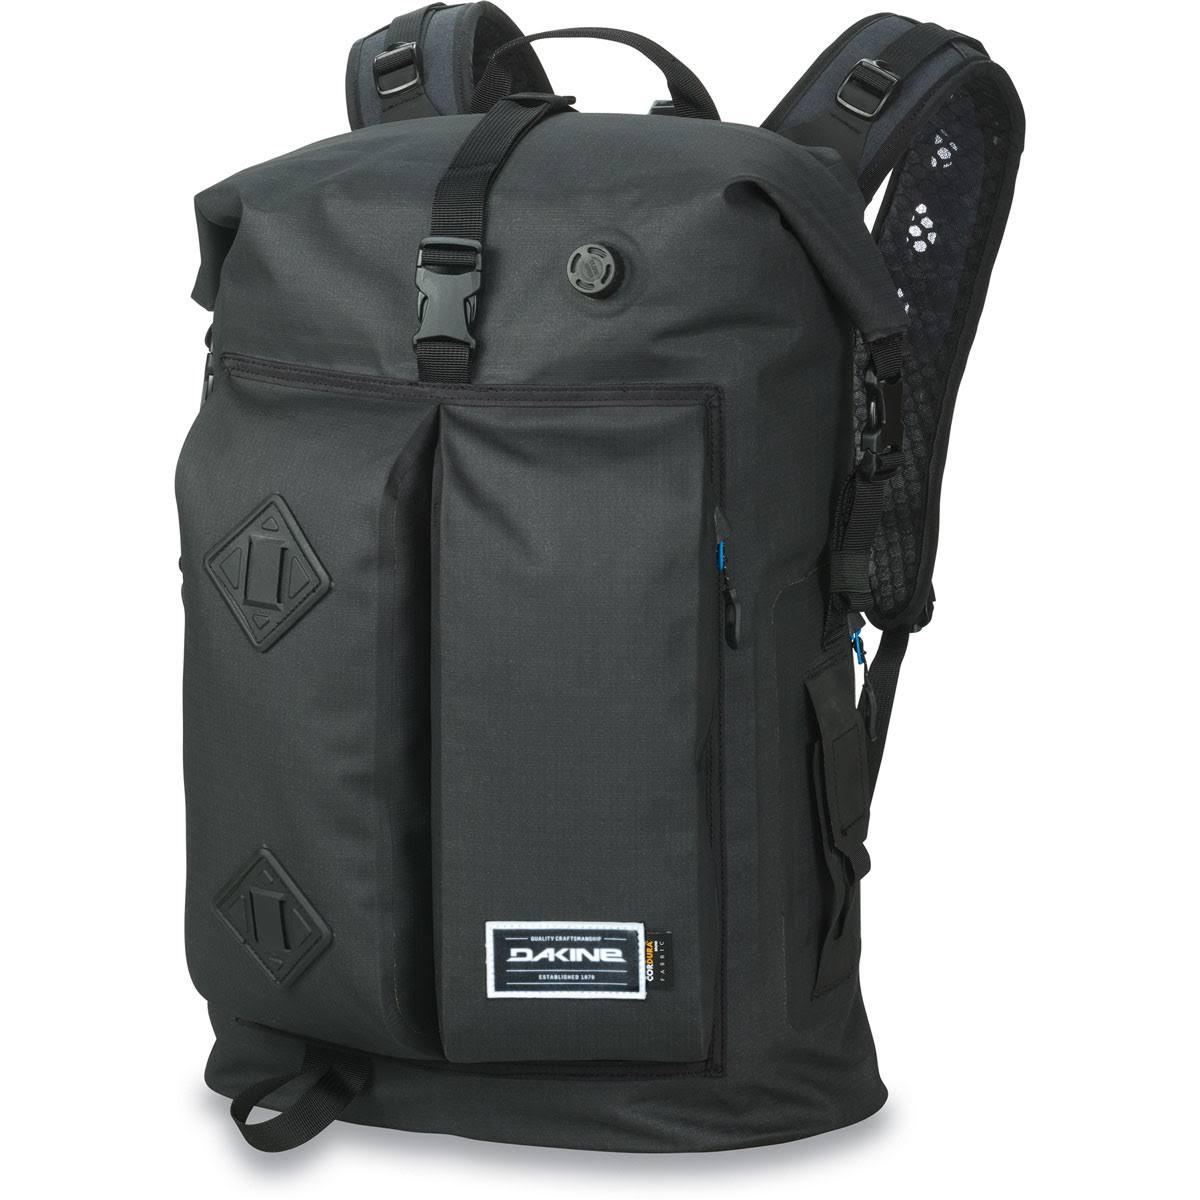 Dakine Cyclone II Dry Pack Mens Waterproof Backpack Bag - Black, 36L